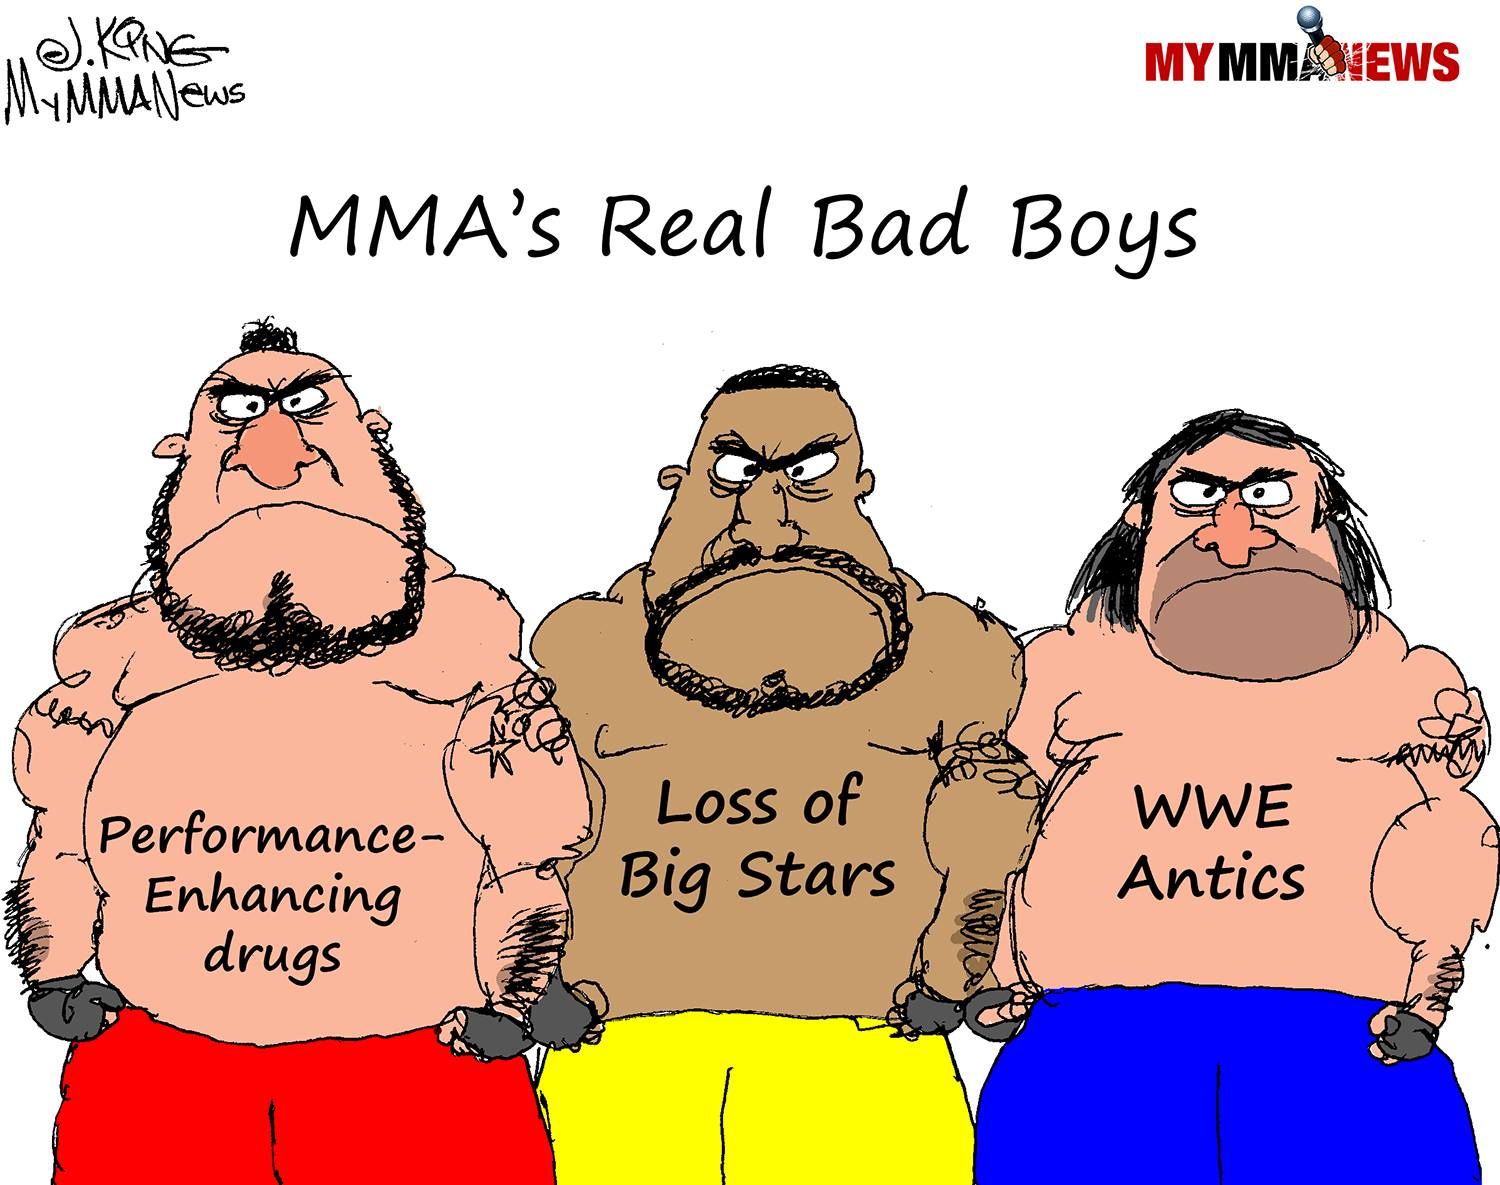 Bad Boys, MyMMANews Cartoon of the Week